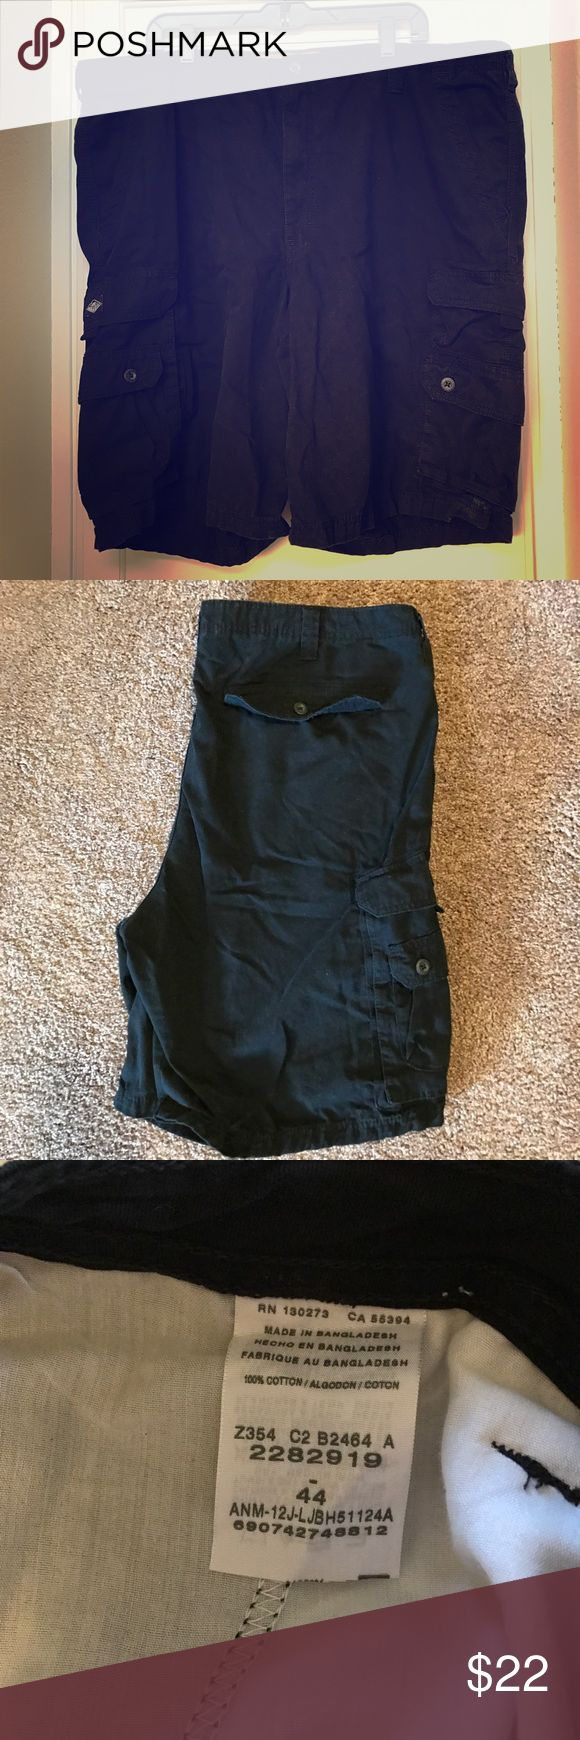 "♦️Men's Lee Dungarees shorts Black Cargo shorts in good used condition. Minimal fading with no rips/tears/stains. 10"" inseam. Lee Shorts Cargo"